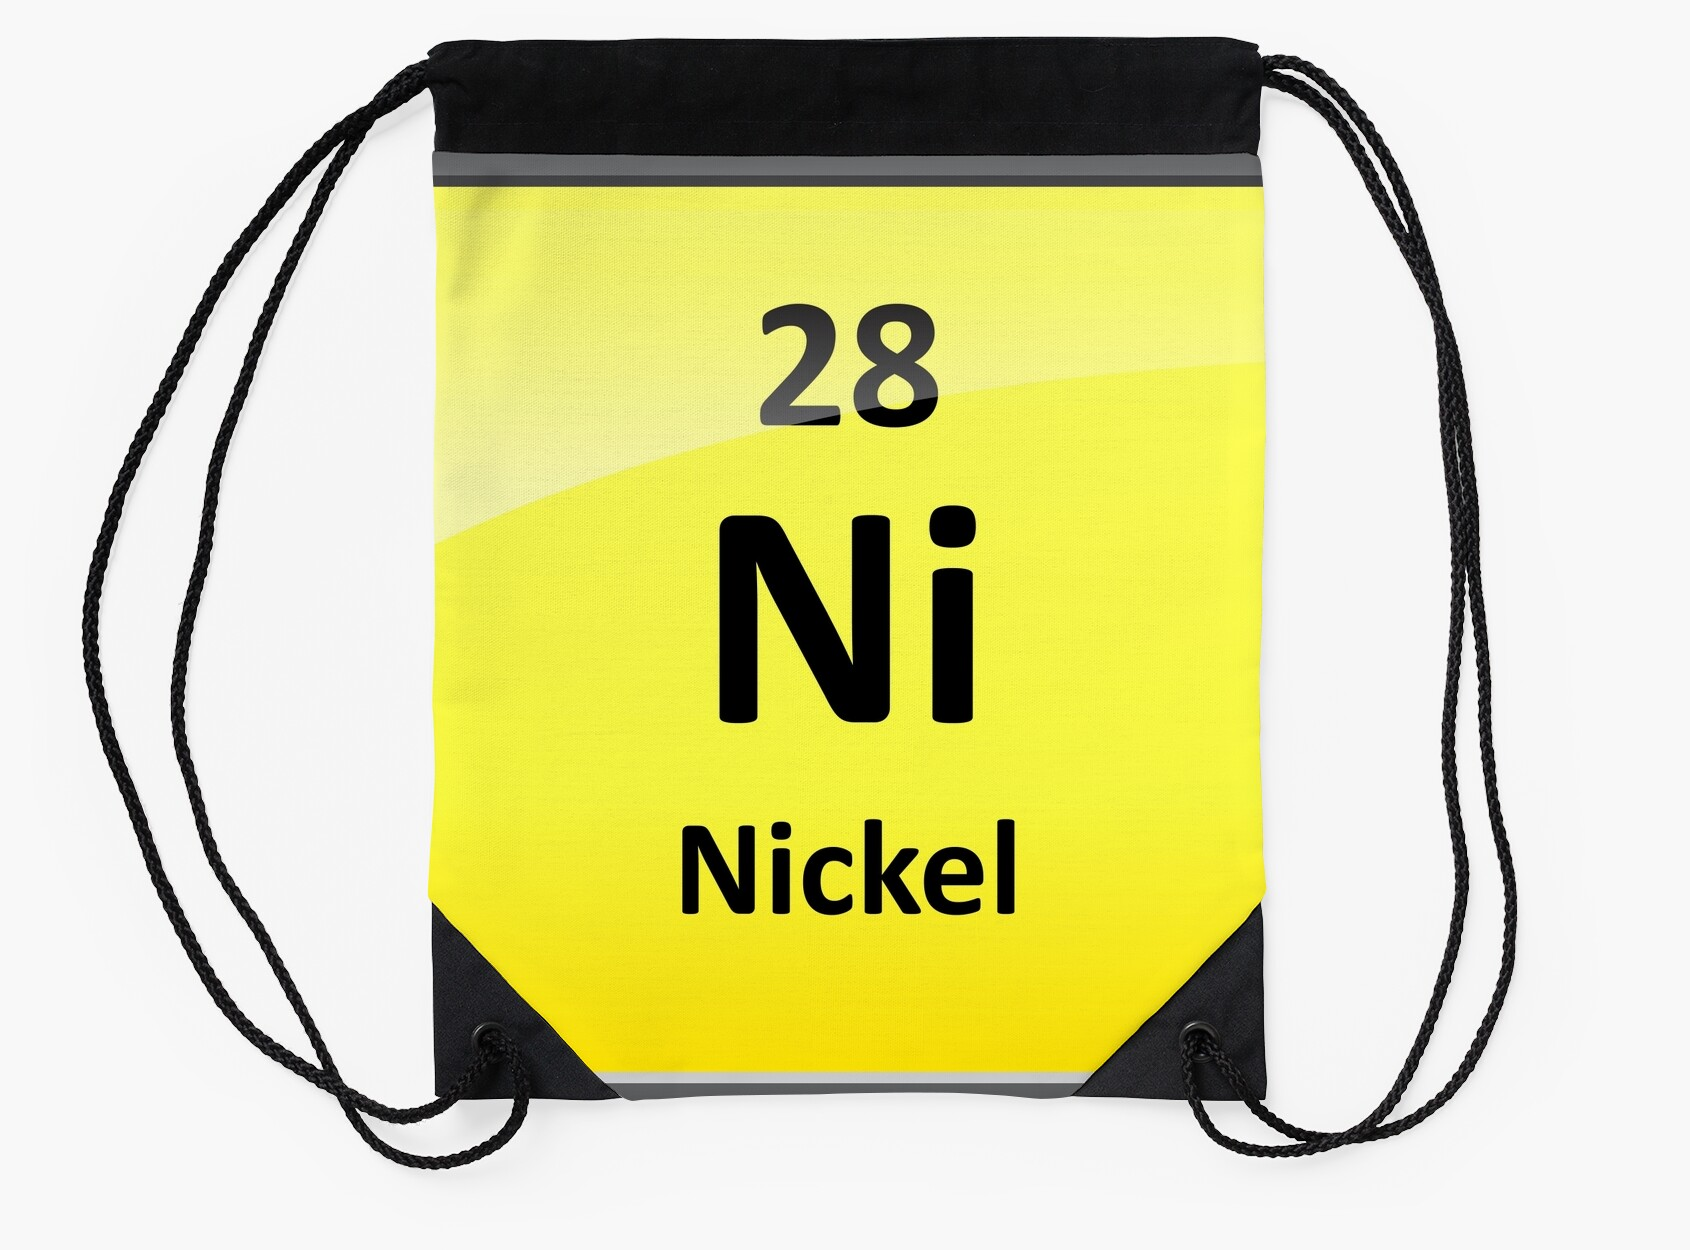 Periodic table for nickel images periodic table images periodic table symbol for salt image collections periodic table symbol for nickel on periodic table images gamestrikefo Gallery